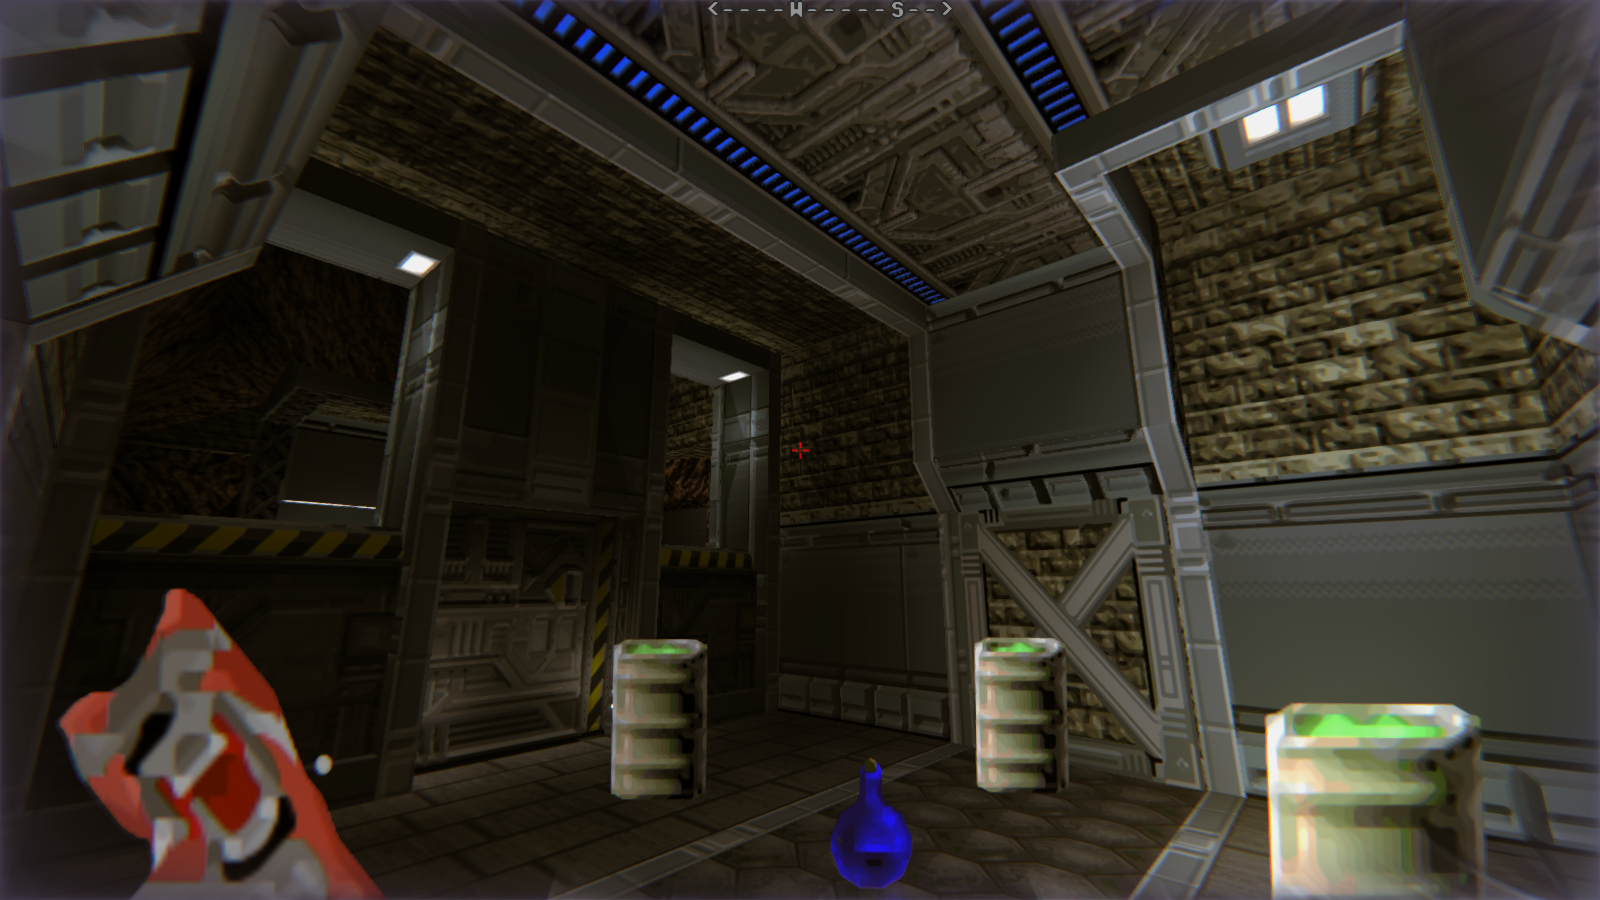 DRRP Doom RPG Remake Project SEC4 Sector 4 Cerberus Barrel Caves Screenshot